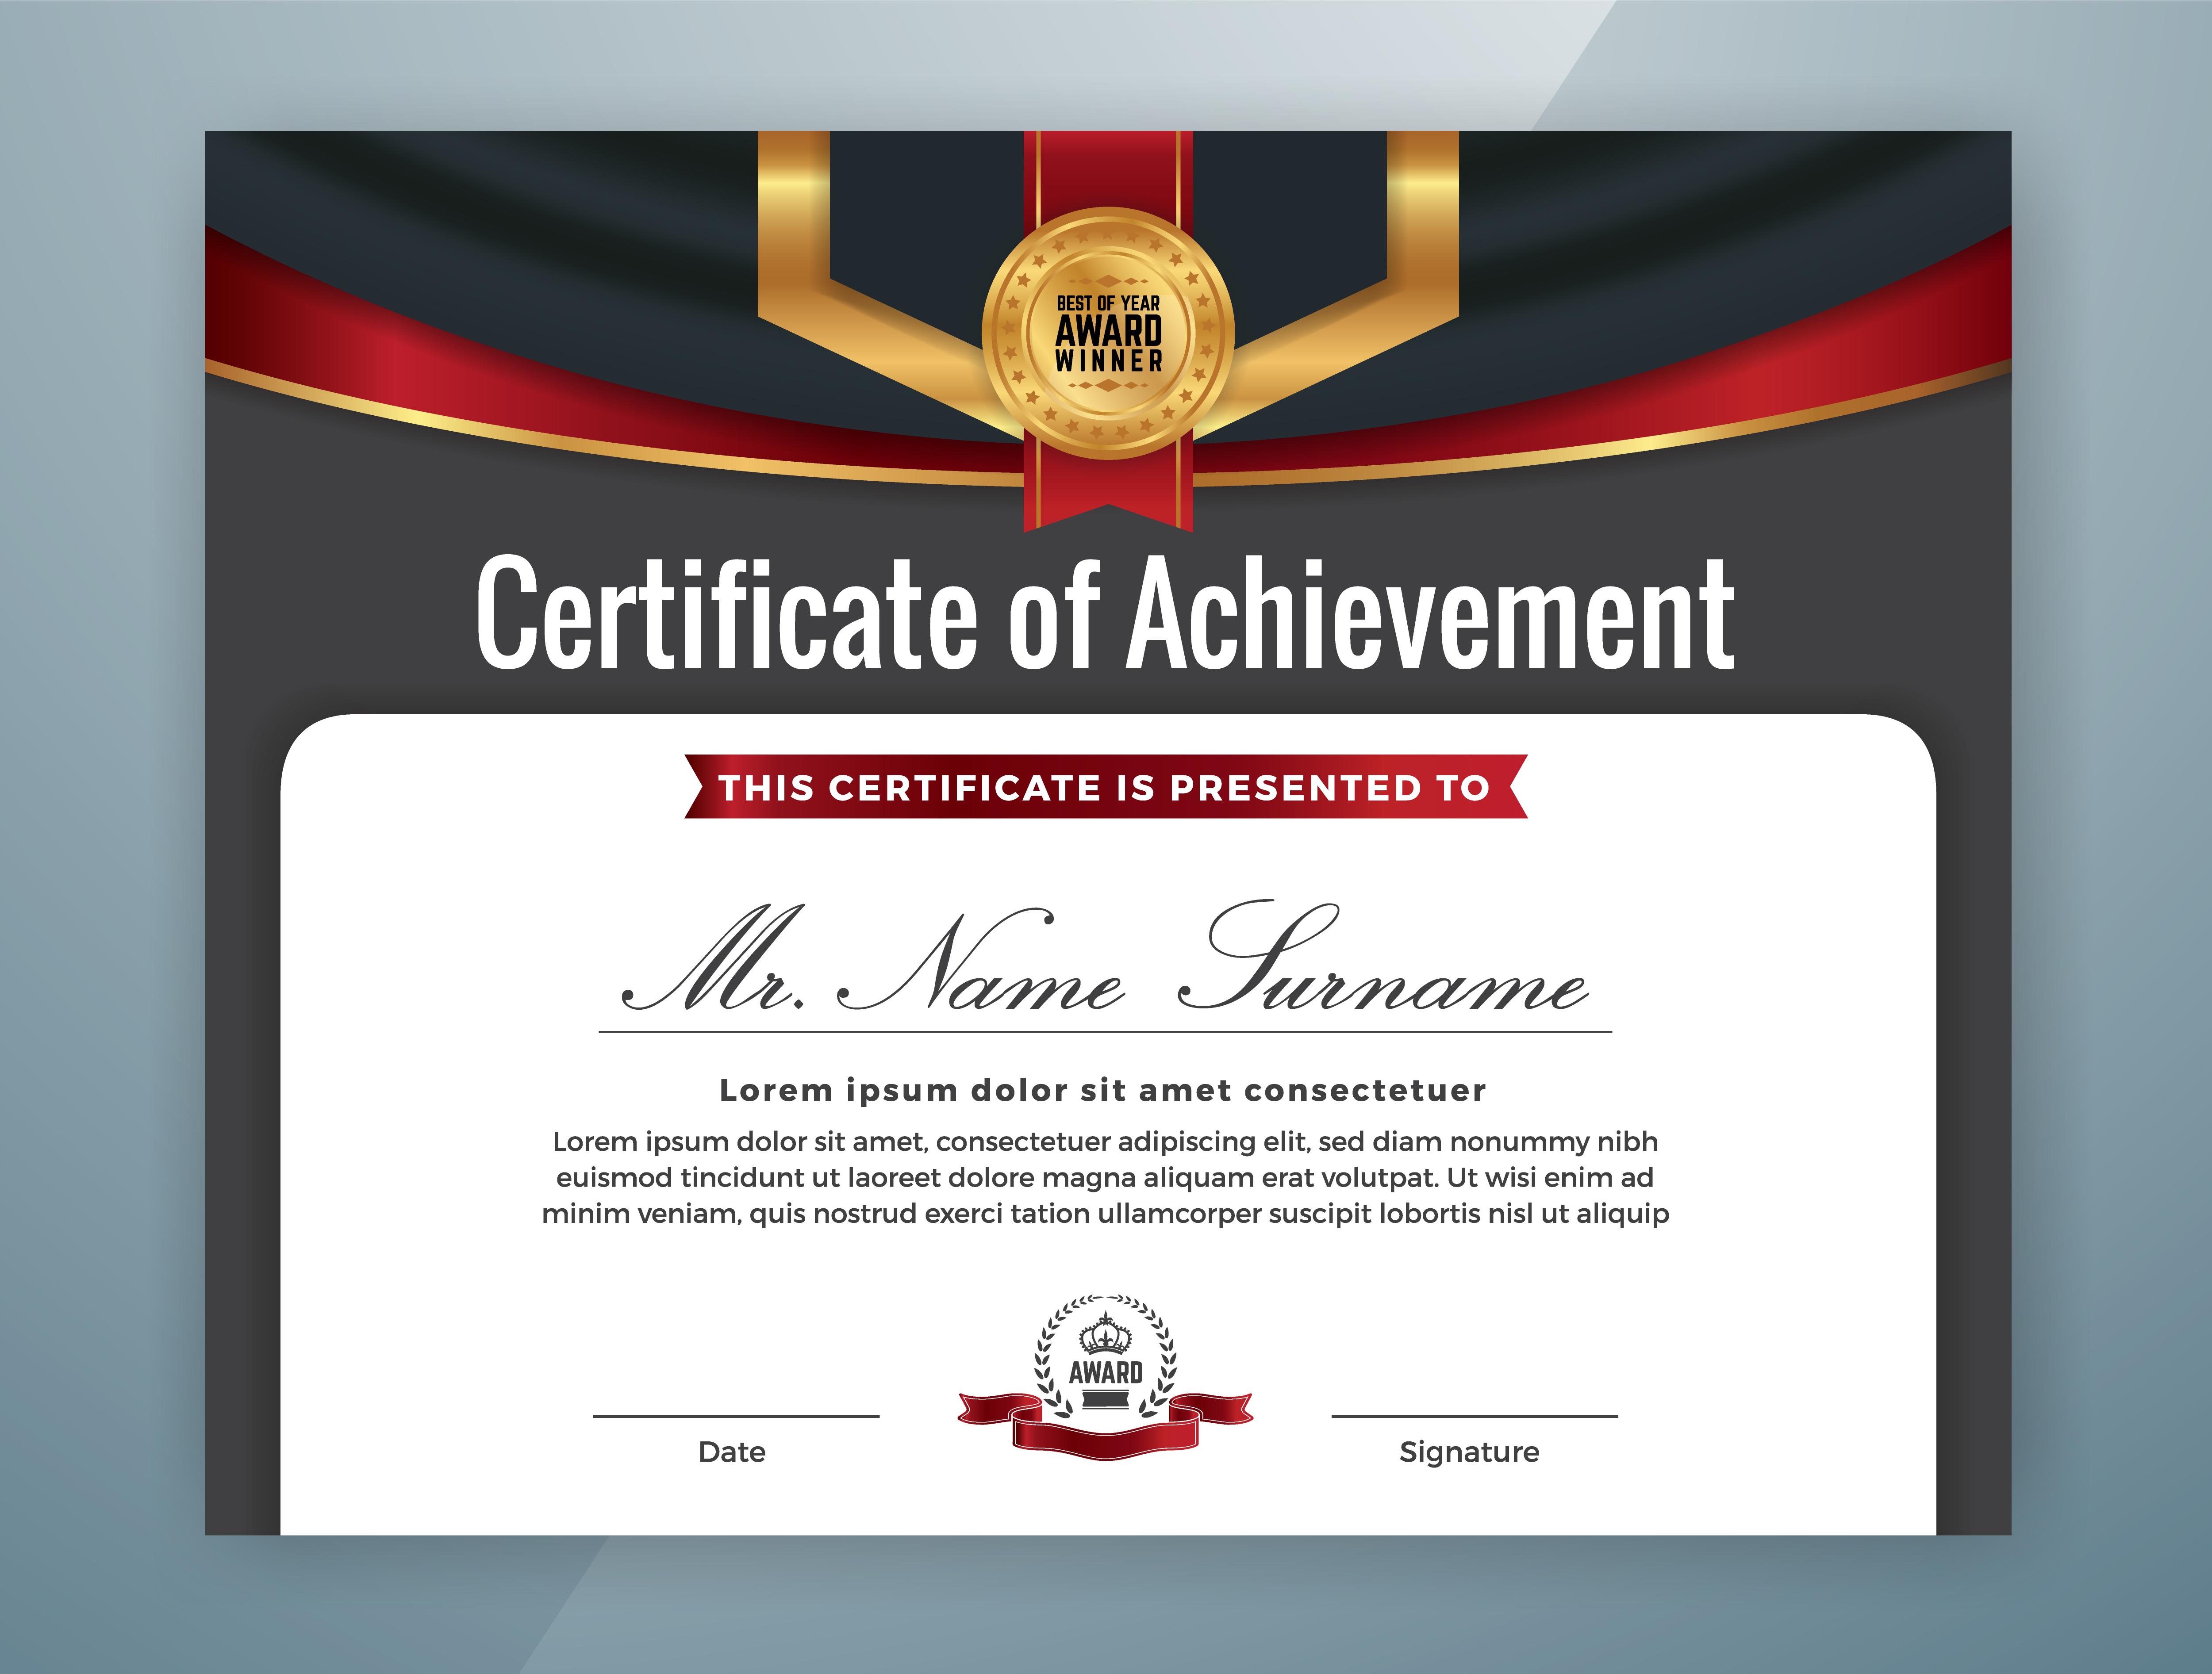 Certificate Seal Free Vector Art - (2029 Free Downloads)